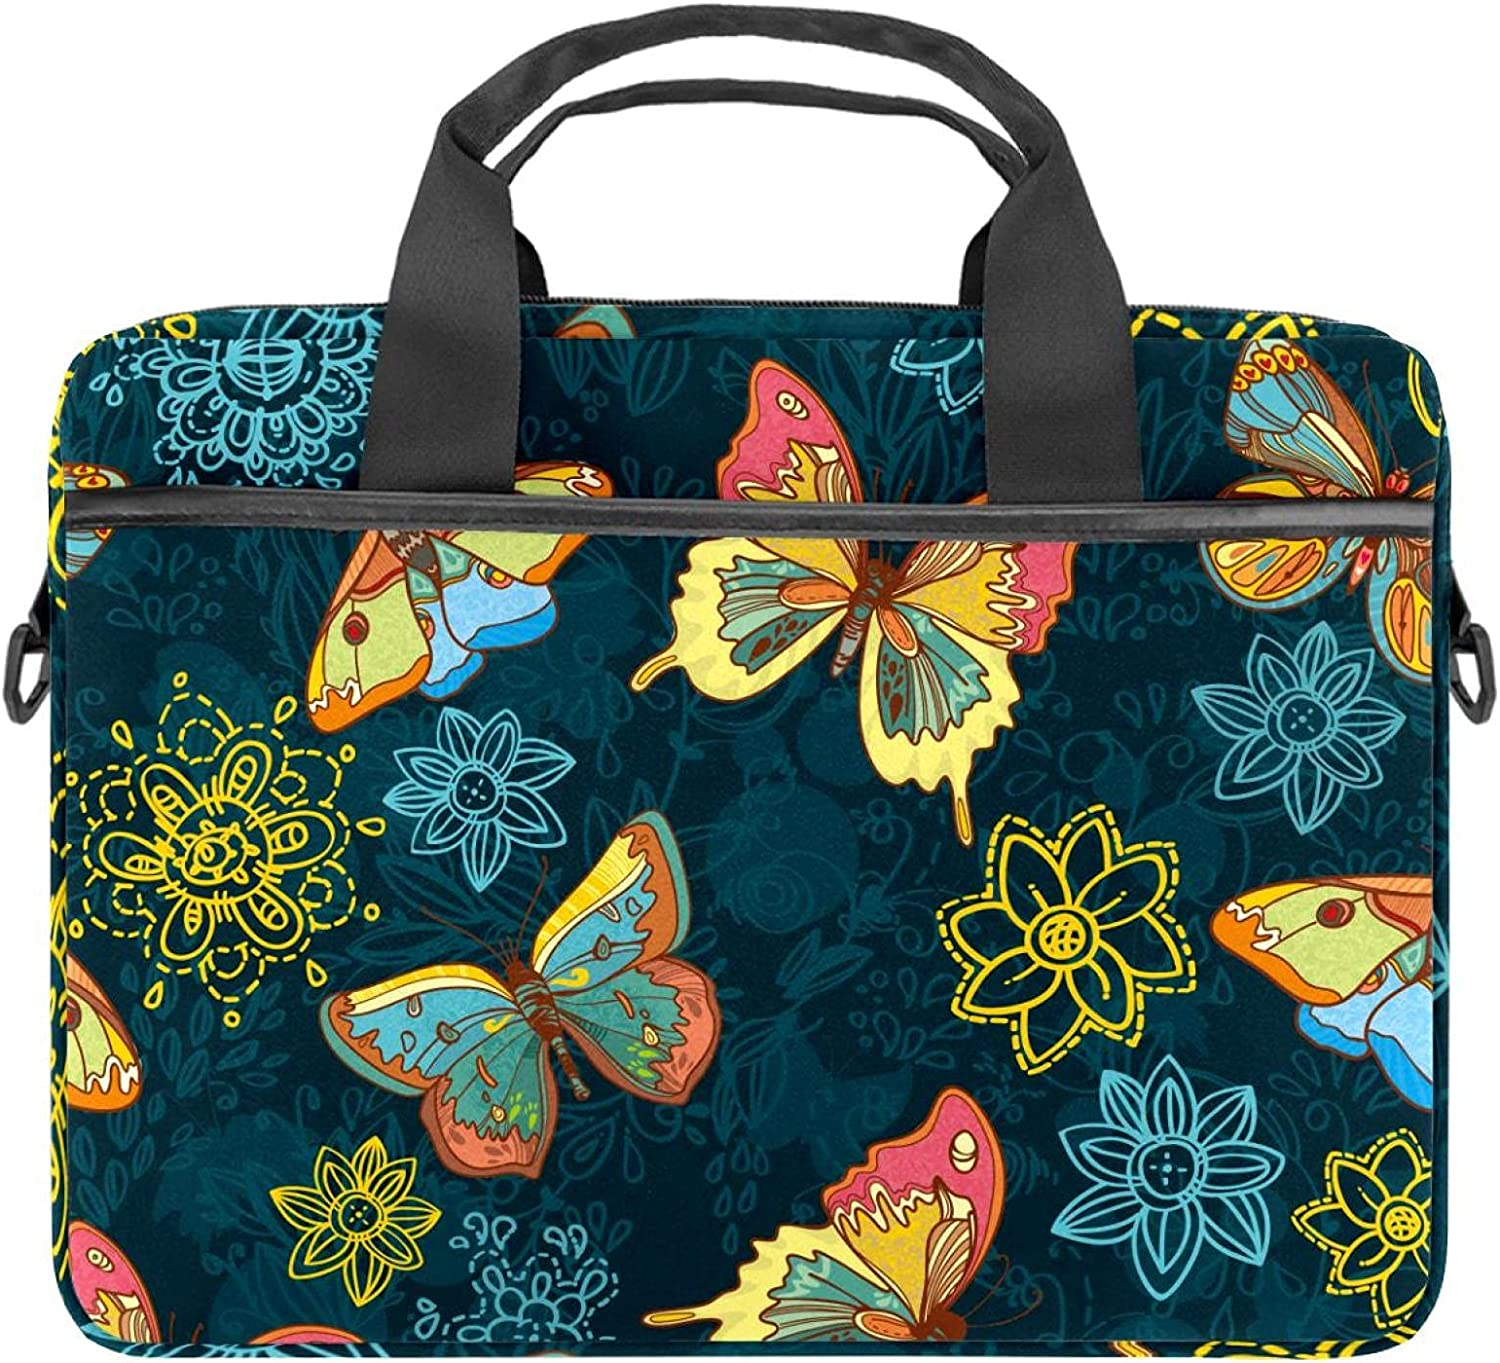 Butterflies And El Paso Mall We OFFer at cheap prices Flowers Laptop Shoulder Sleev Case Bag Messenger